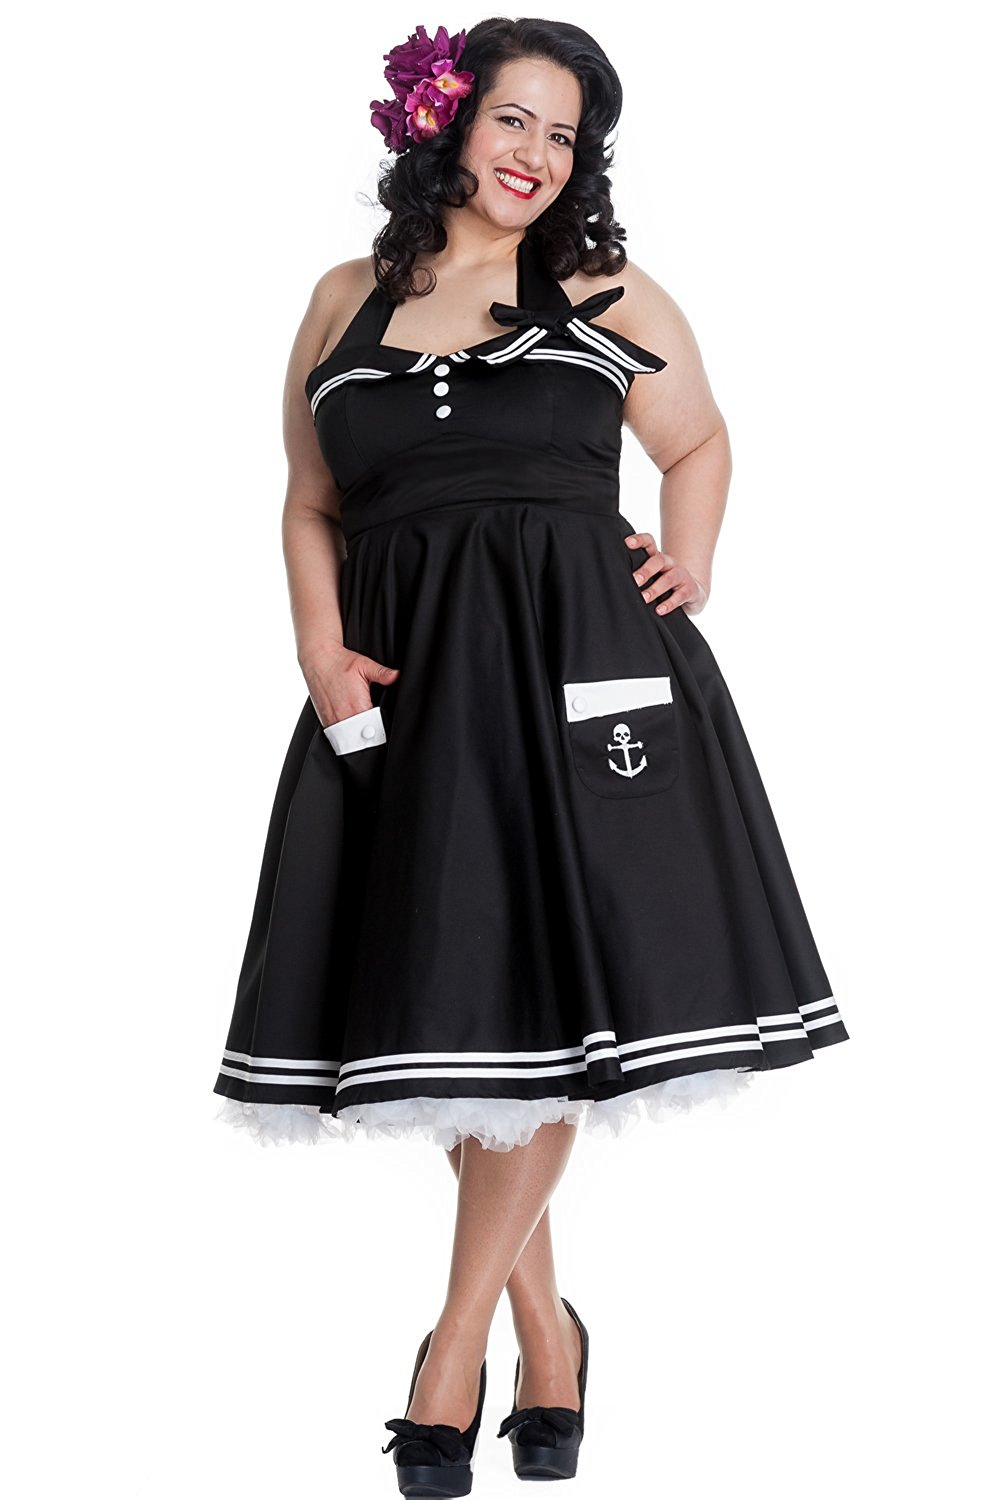 810d715ca Get Quotations · Hell Bunny Plus Size 60 s Motley Pinup Vintage Halter  Sailor Black Swing Dress